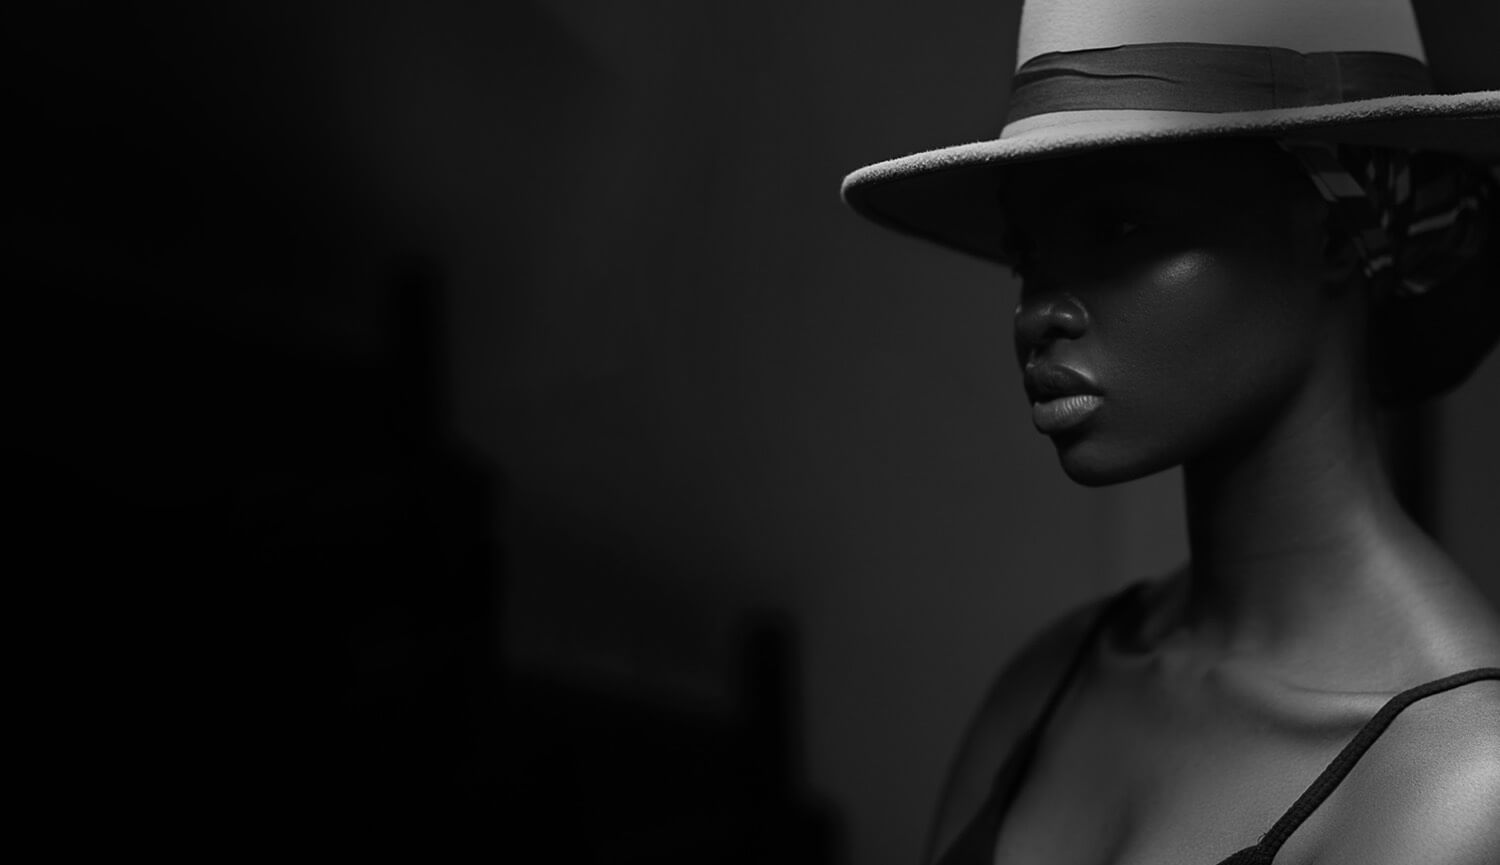 black and white image of a woman wearing a fedora hat